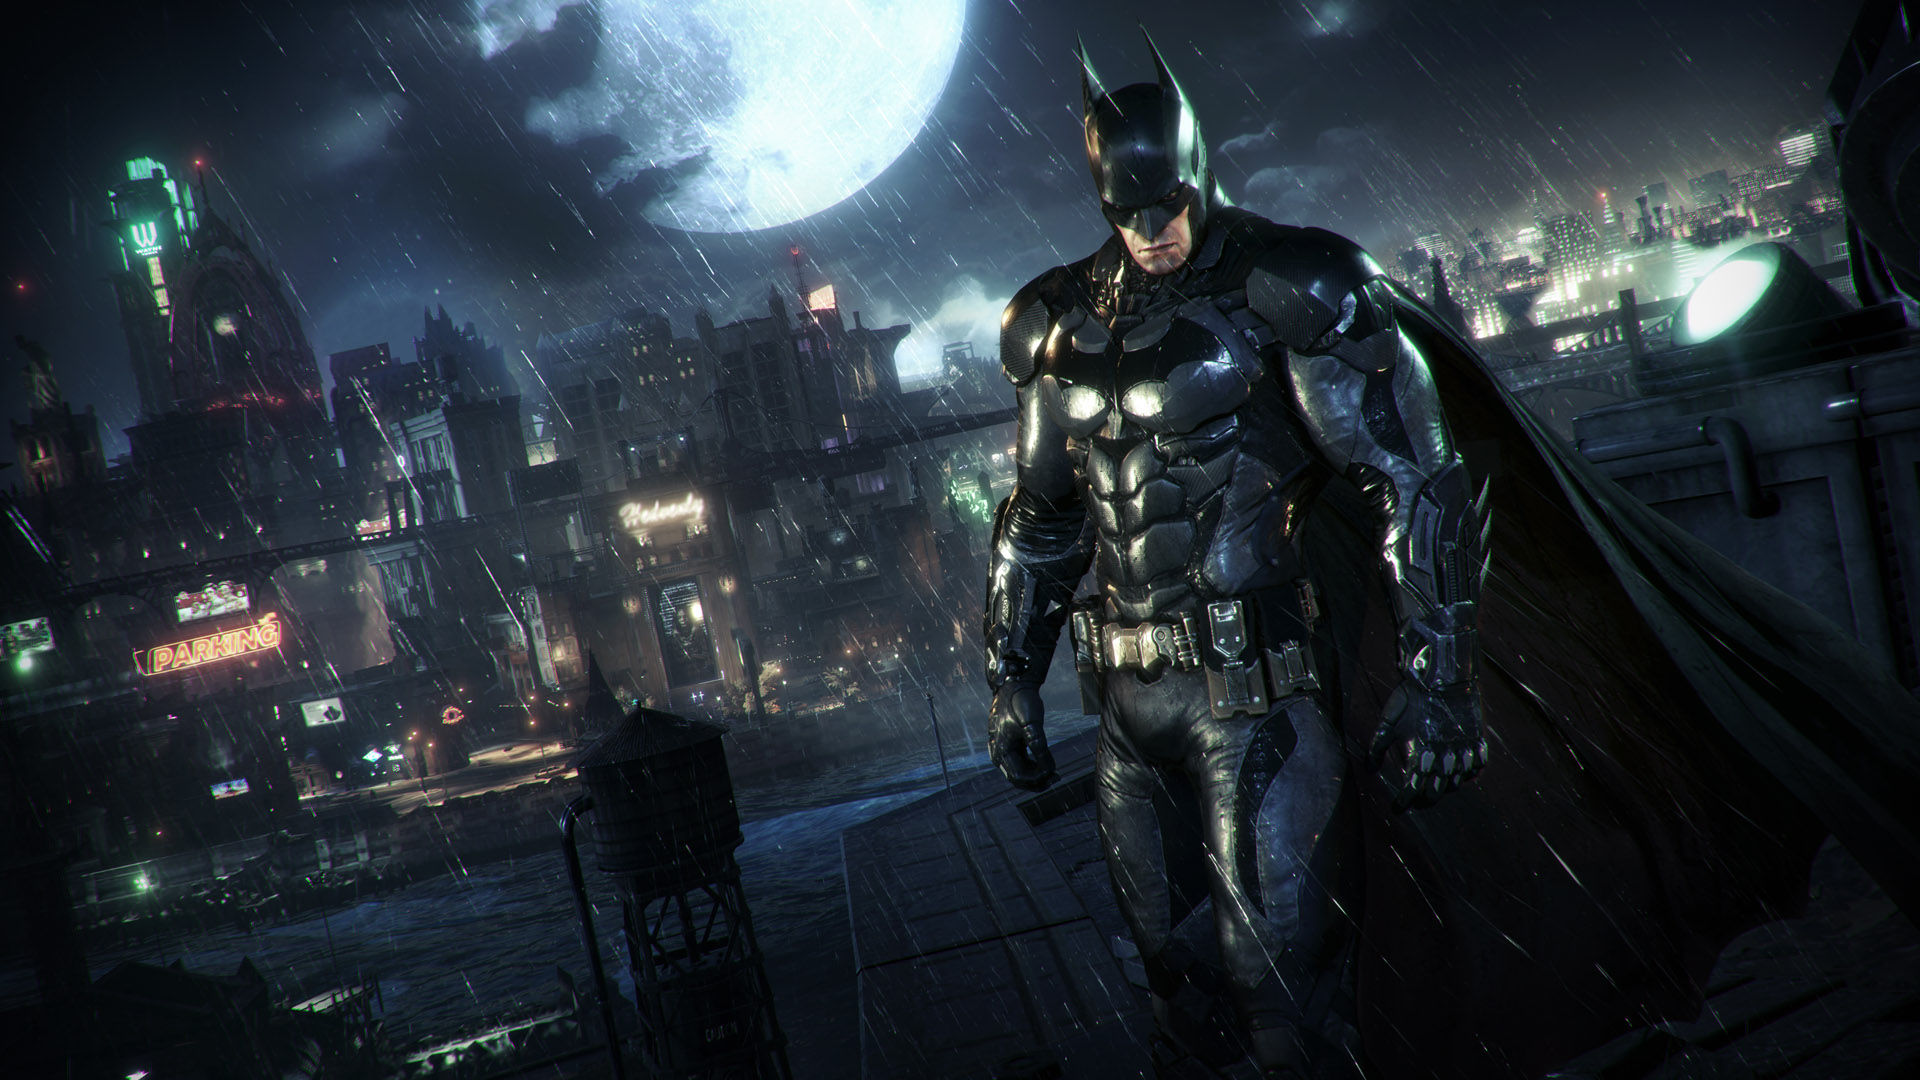 On the Topic of Video Games – Episode 16: Technical Difficulties WITH BATMAN